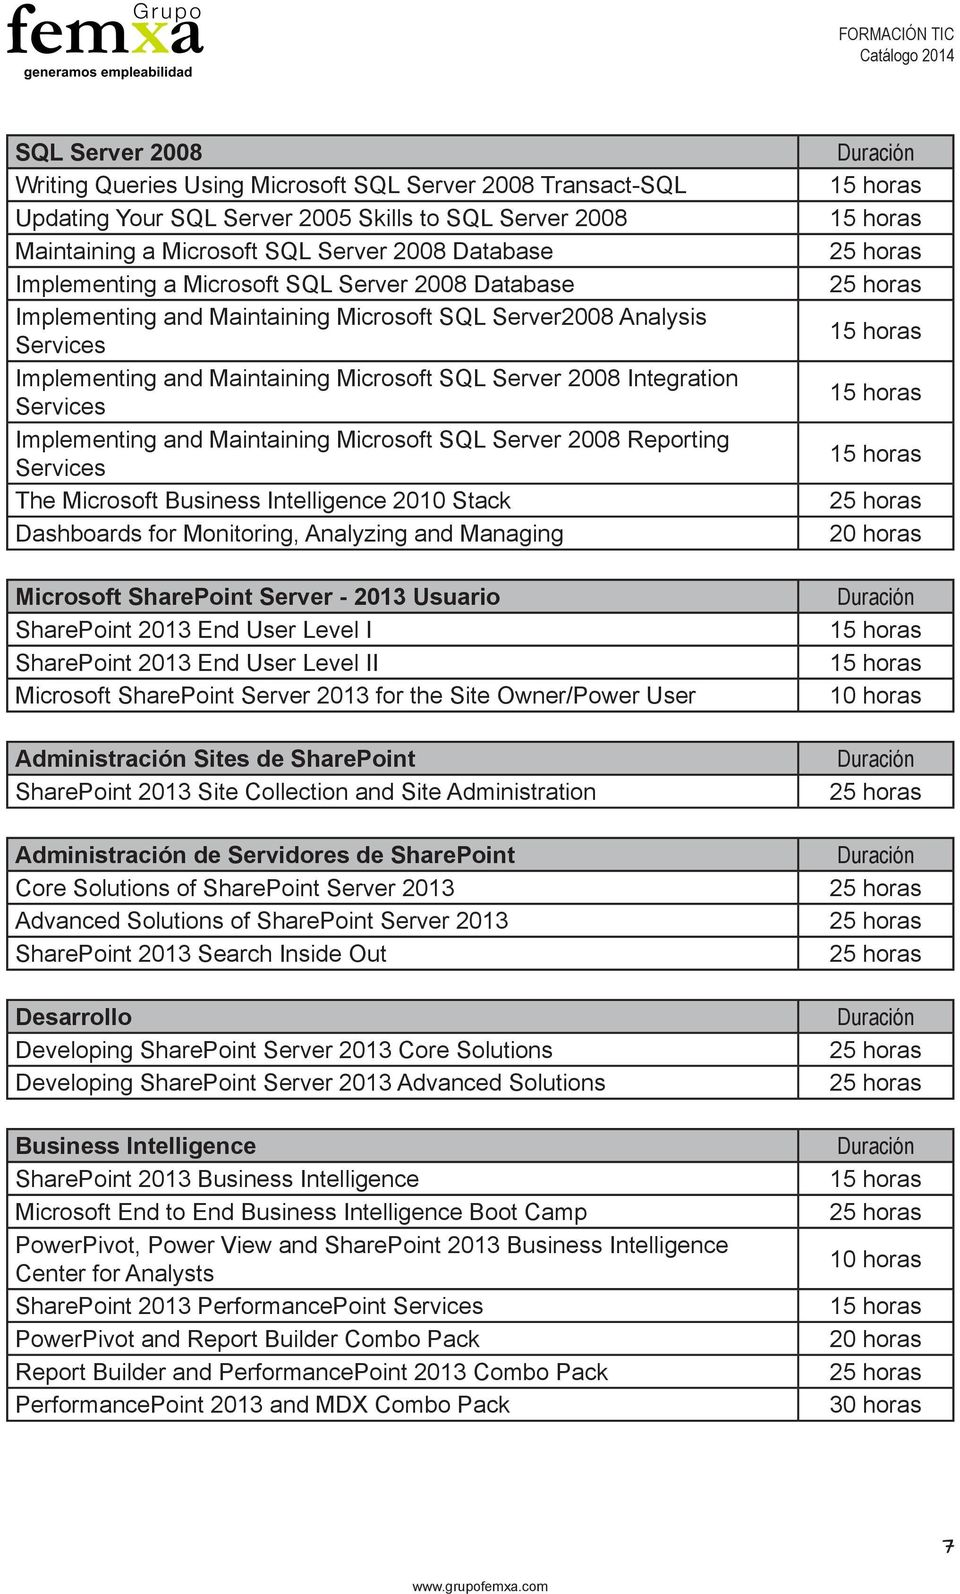 Maintaining Microsoft SQL Server 2008 Reporting Services The Microsoft Business Intelligence 2010 Stack Dashboards for Monitoring, Analyzing and Managing Microsoft SharePoint Server - 2013 Usuario